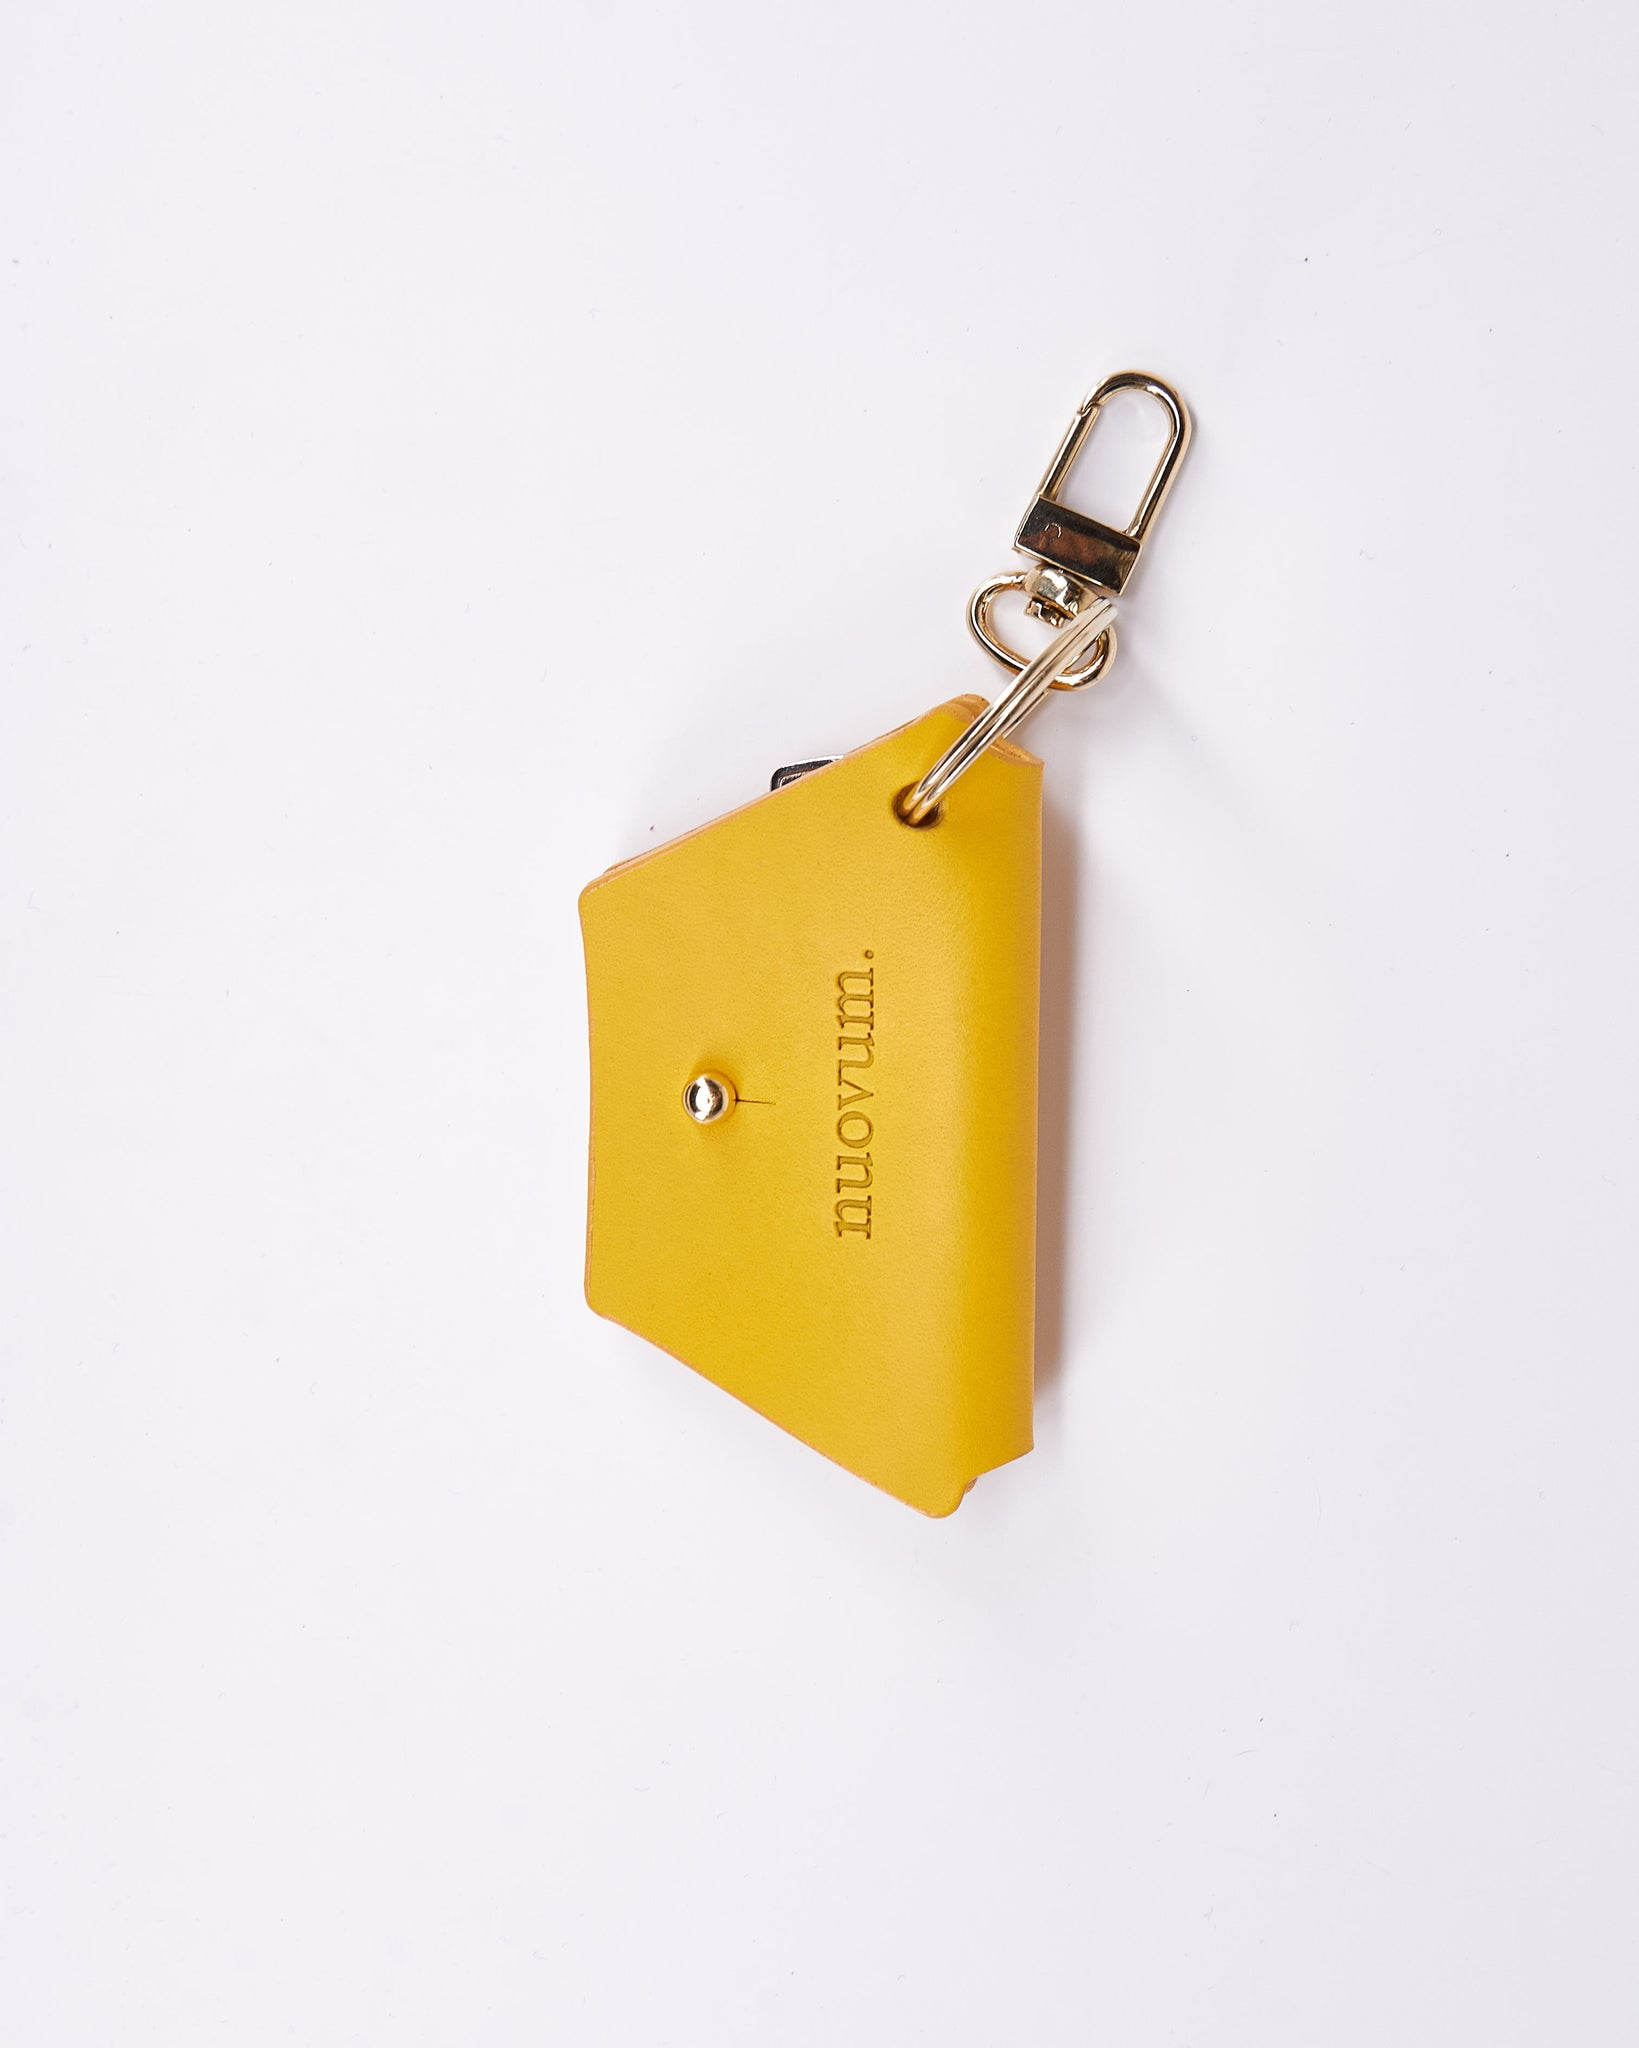 KeyWrap-Nuovum-Leather-Yellow-localdesigners-Barcelona-Nuovum-Handmade-Close